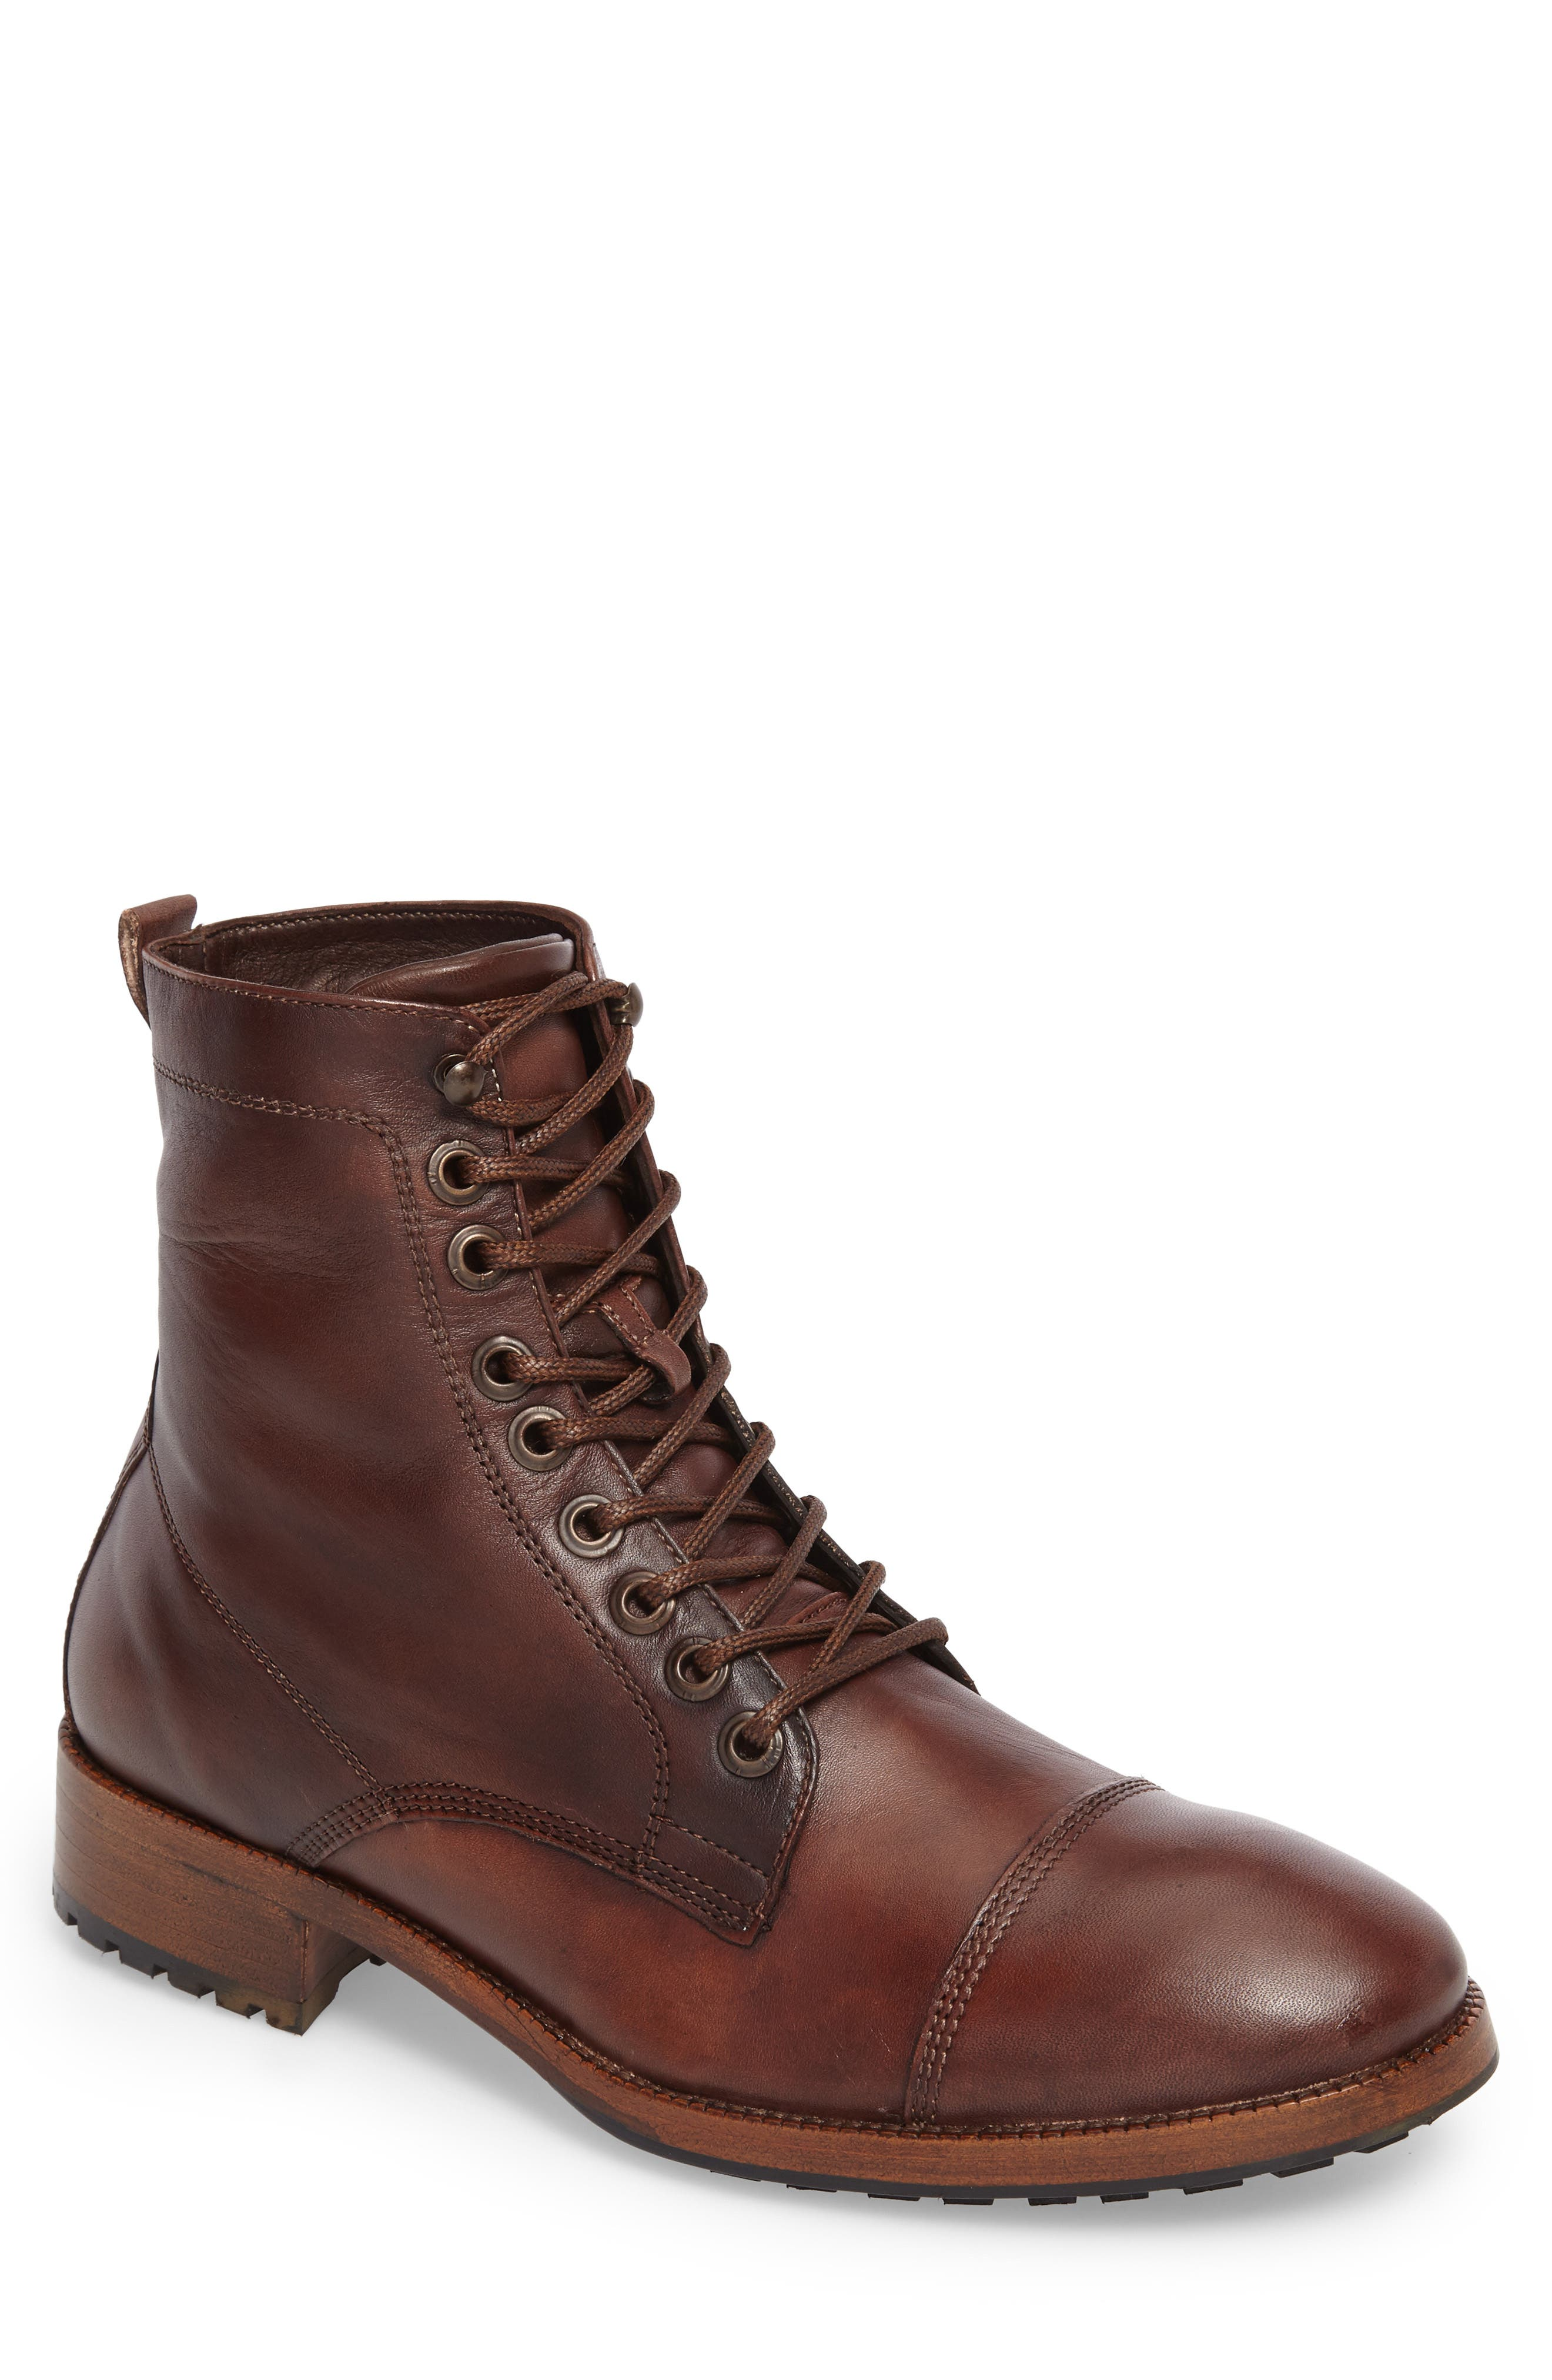 x GQ Ted Cap Toe Boot,                         Main,                         color, 200